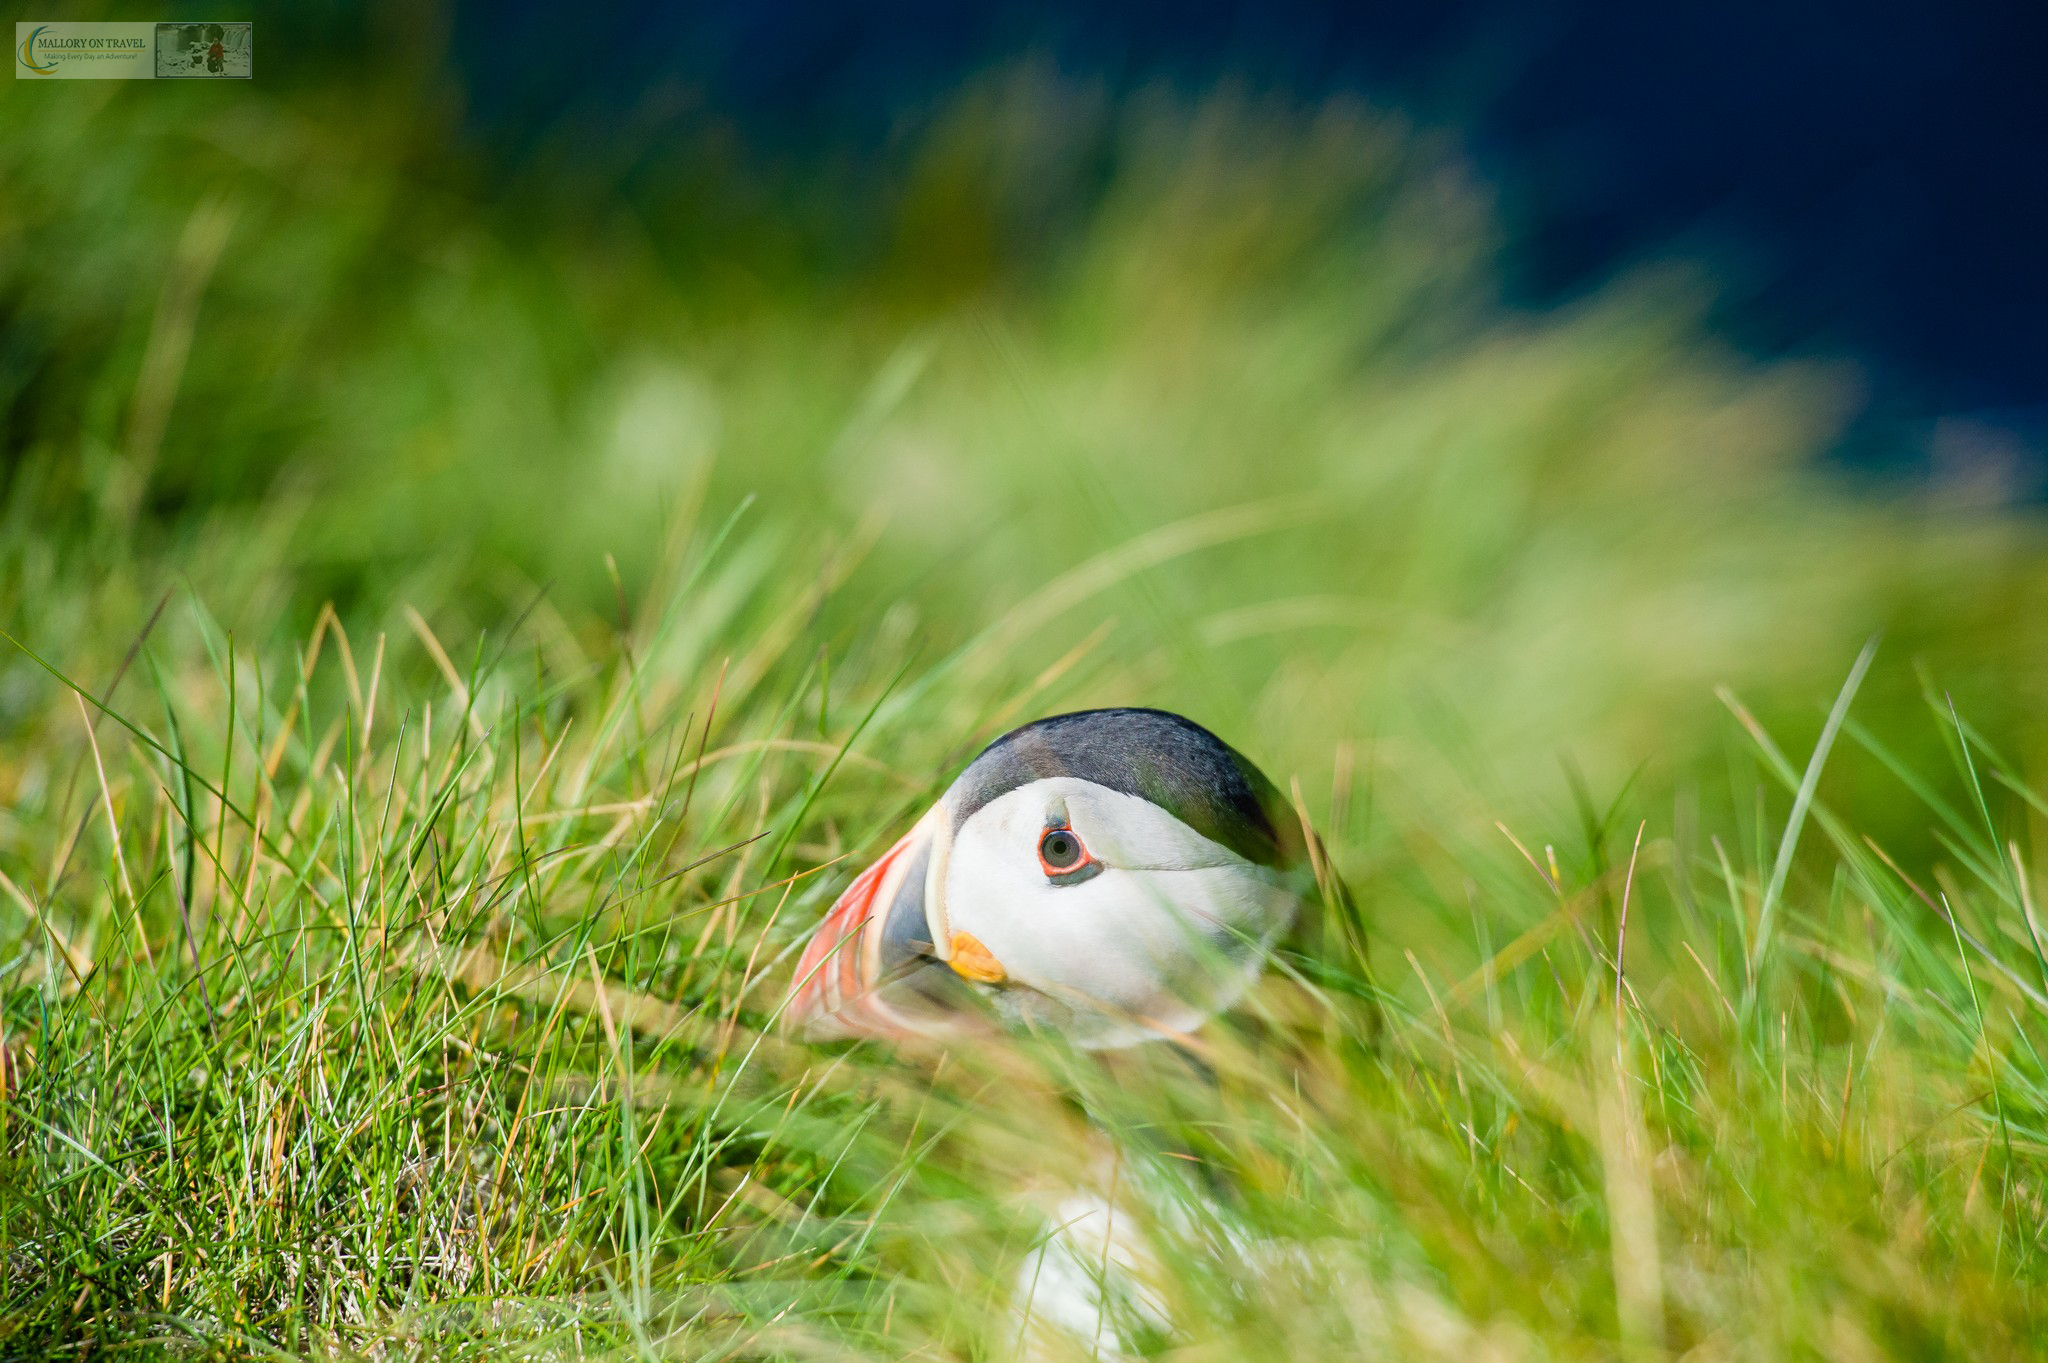 A puffin at Sumburgh Head on the Shetland Islands in the highlands and islands of Scotland on Mallory on Travel adventure travel, photography, travel iain-mallory_scotland8995